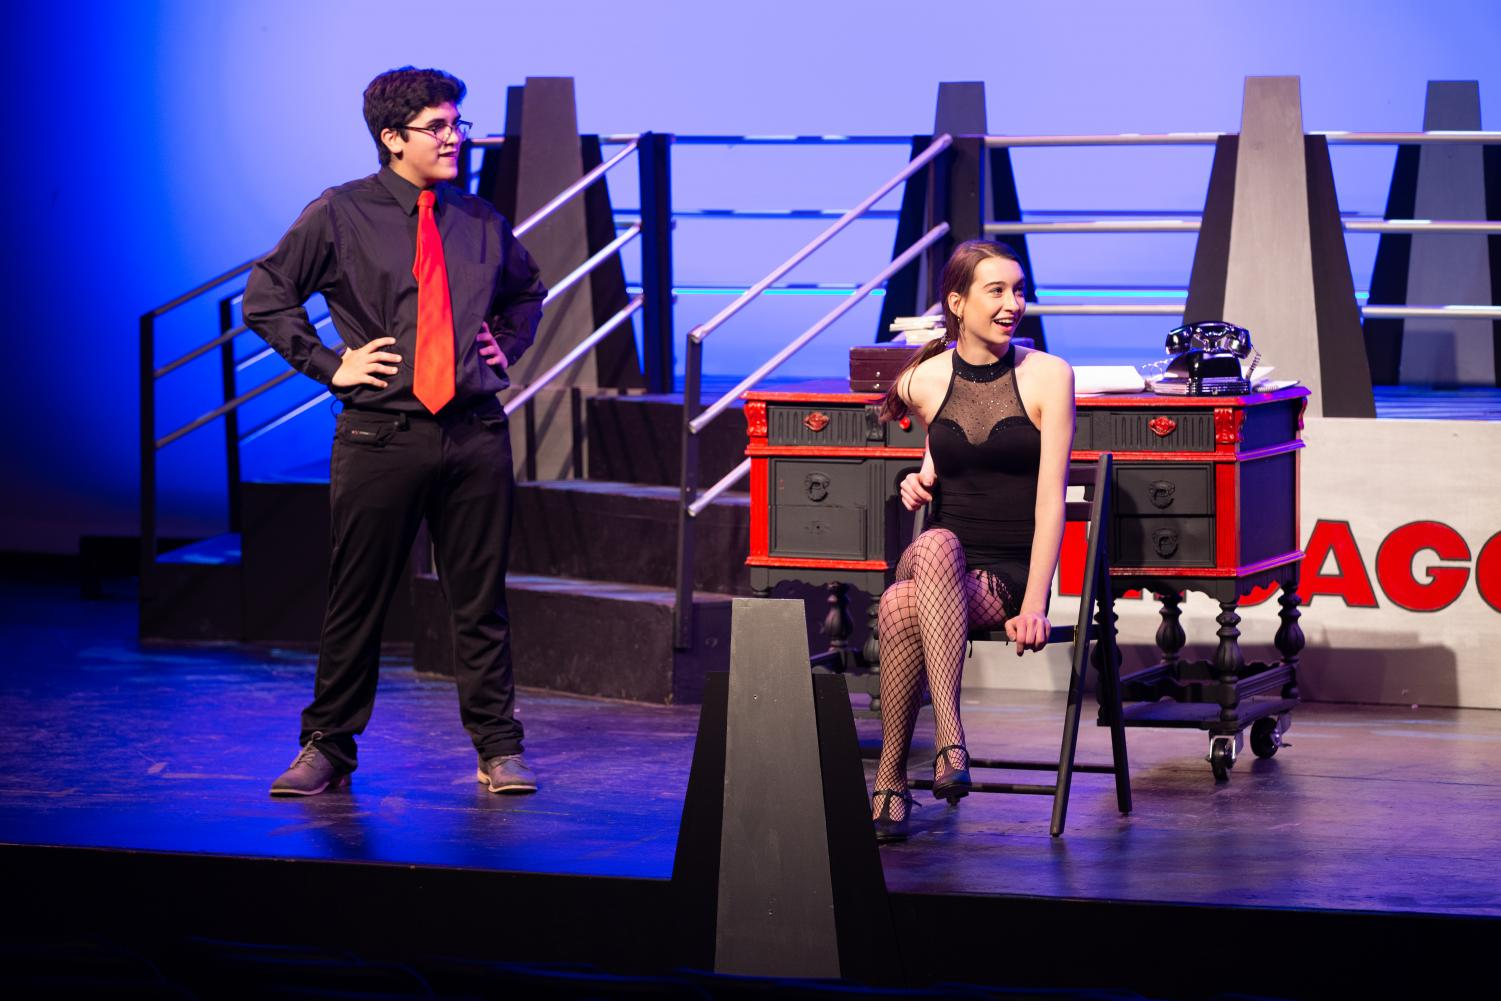 Lawyer Billy Flynn (Kameron Rojas-Schueneman) meets with client Roxie Hart (Nonie Sharp) to plot ways to not only get her off the hook, but also rise to fame. Check out the muscial the weekend of Nov 14-17.